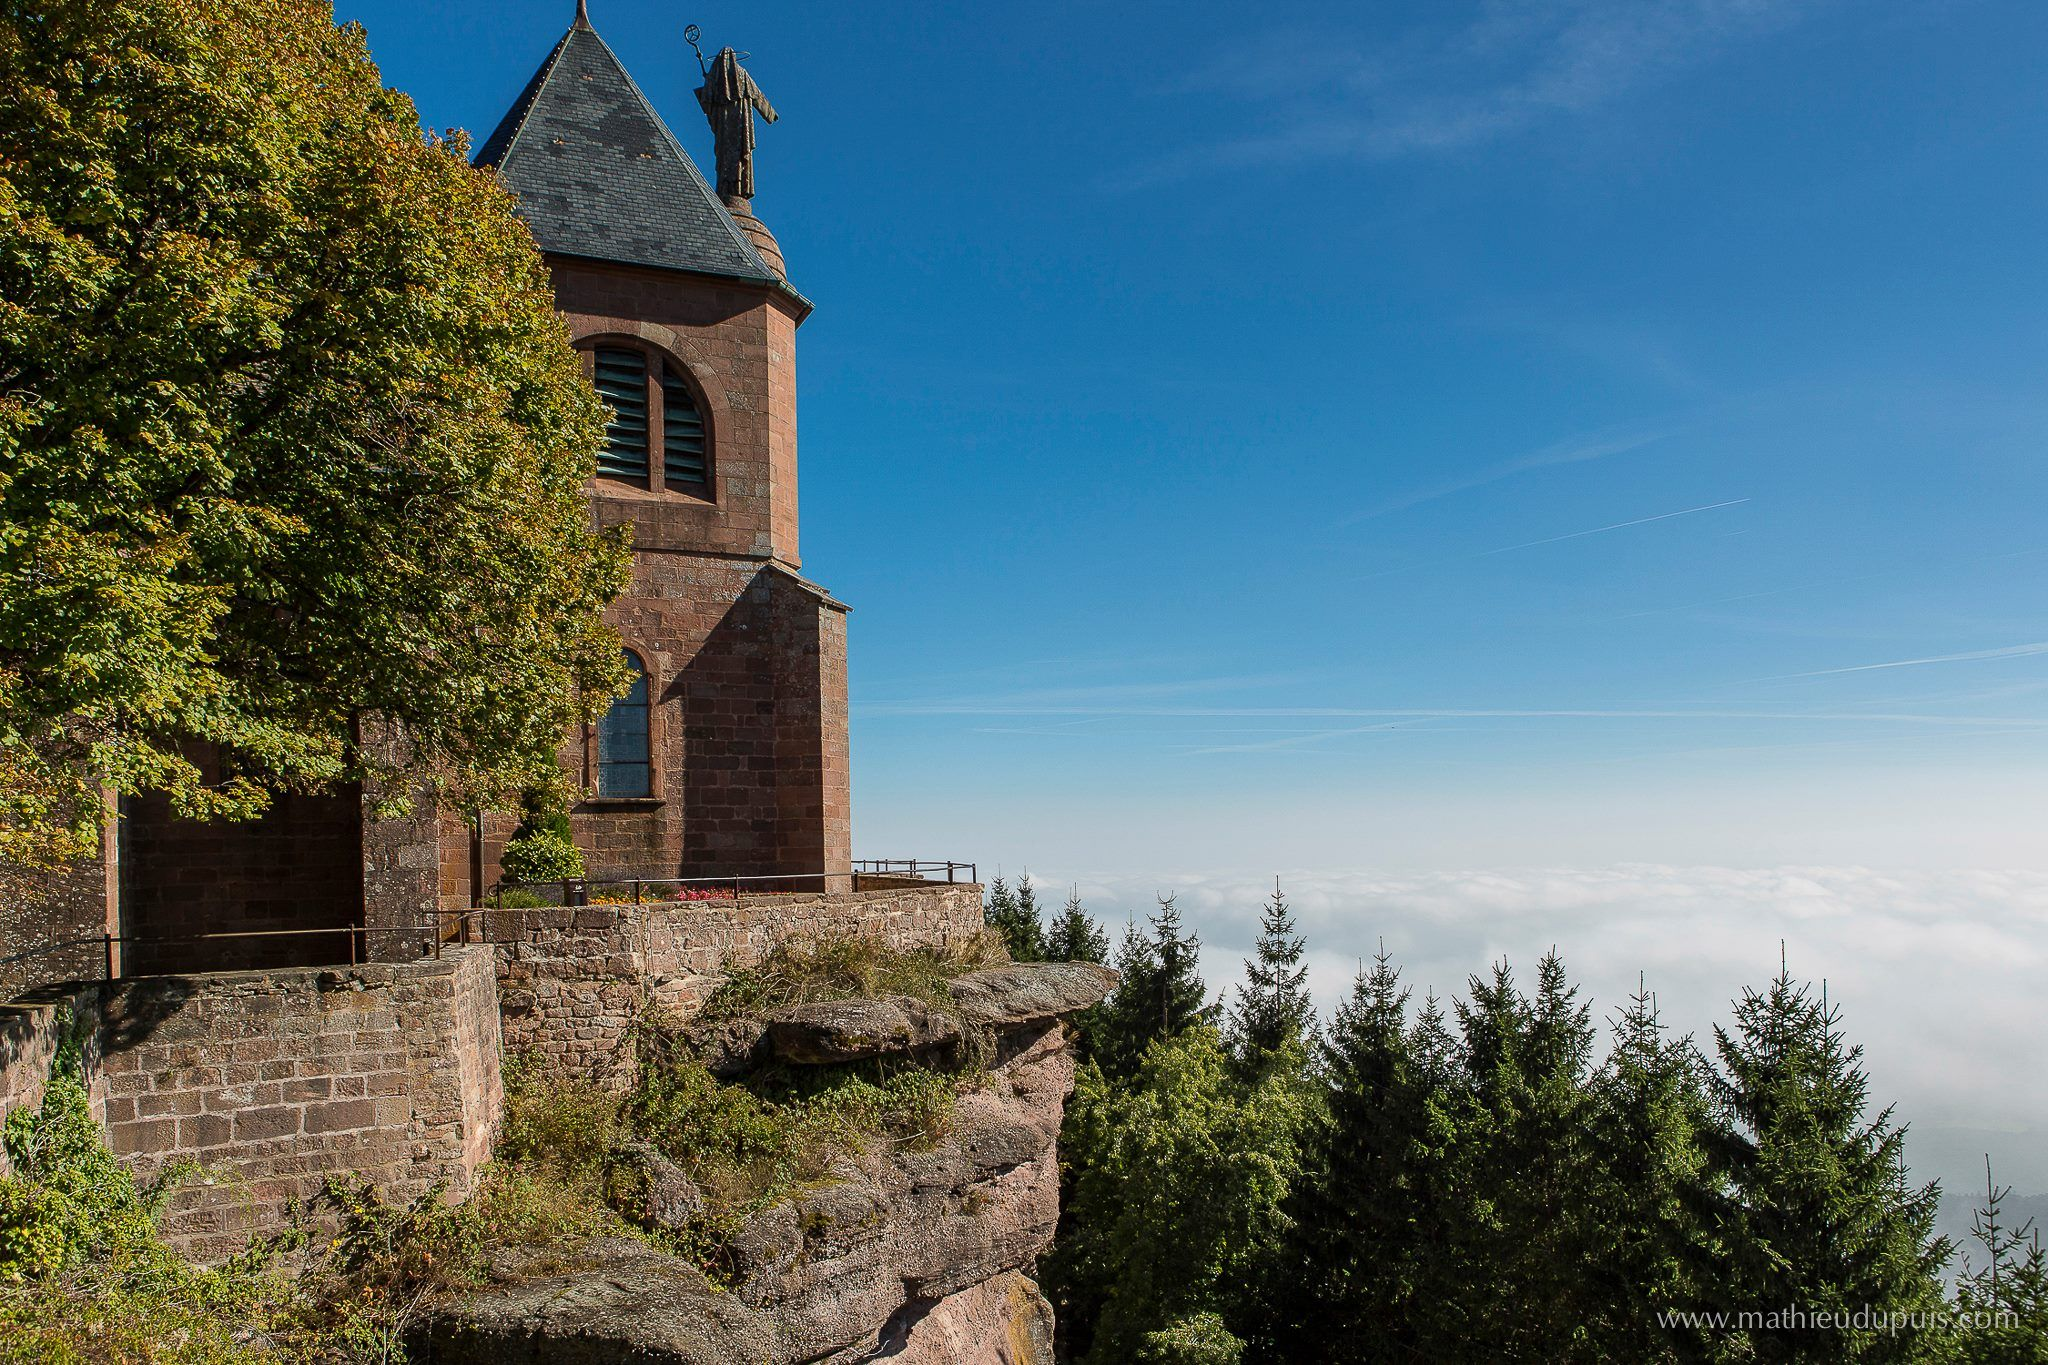 http://www.euroguides.eu/euroguides/france/alsace.html